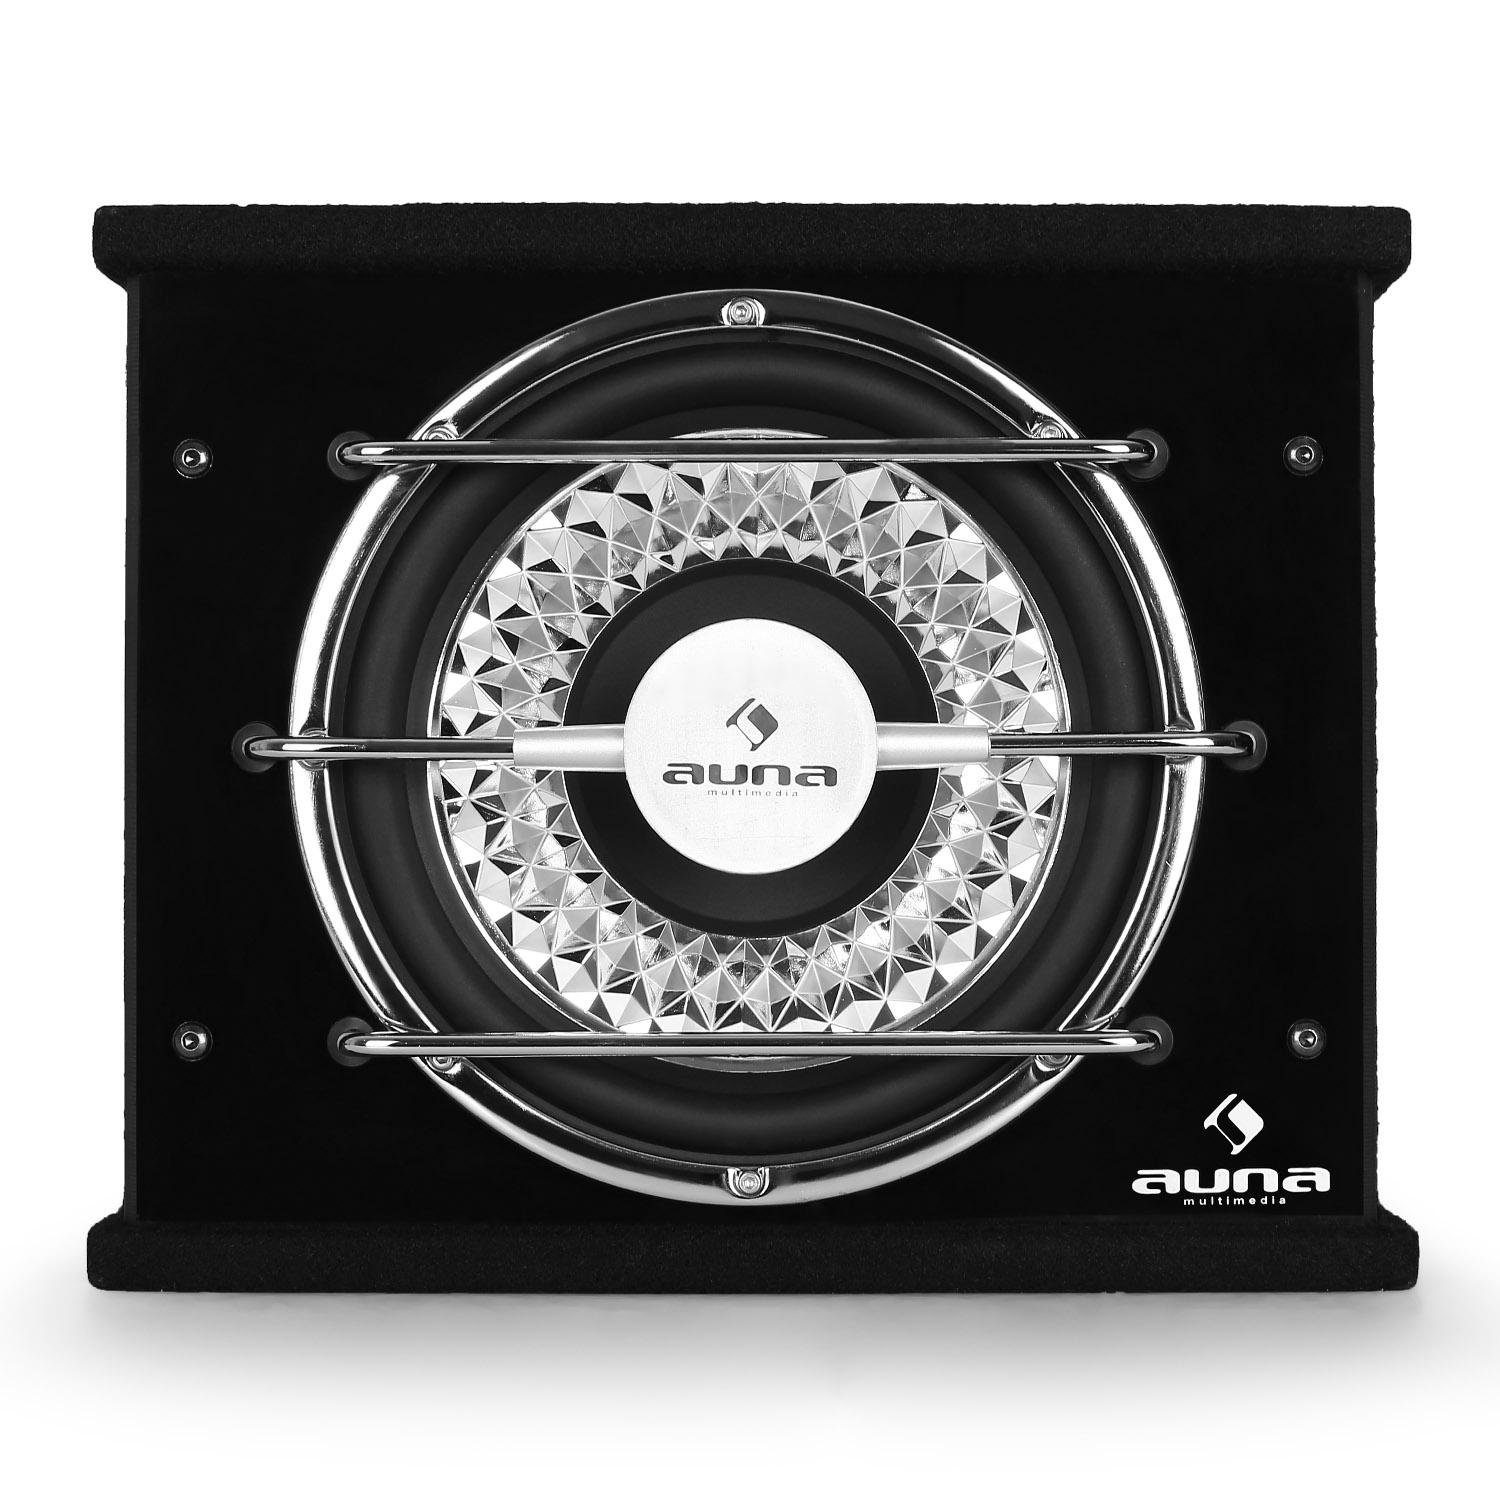 600W, 2 Powerful Bass-Reflex Tubes, 2 Voice Coil auna CD300-4BX 12 Compact Subwoofer Black//Silver